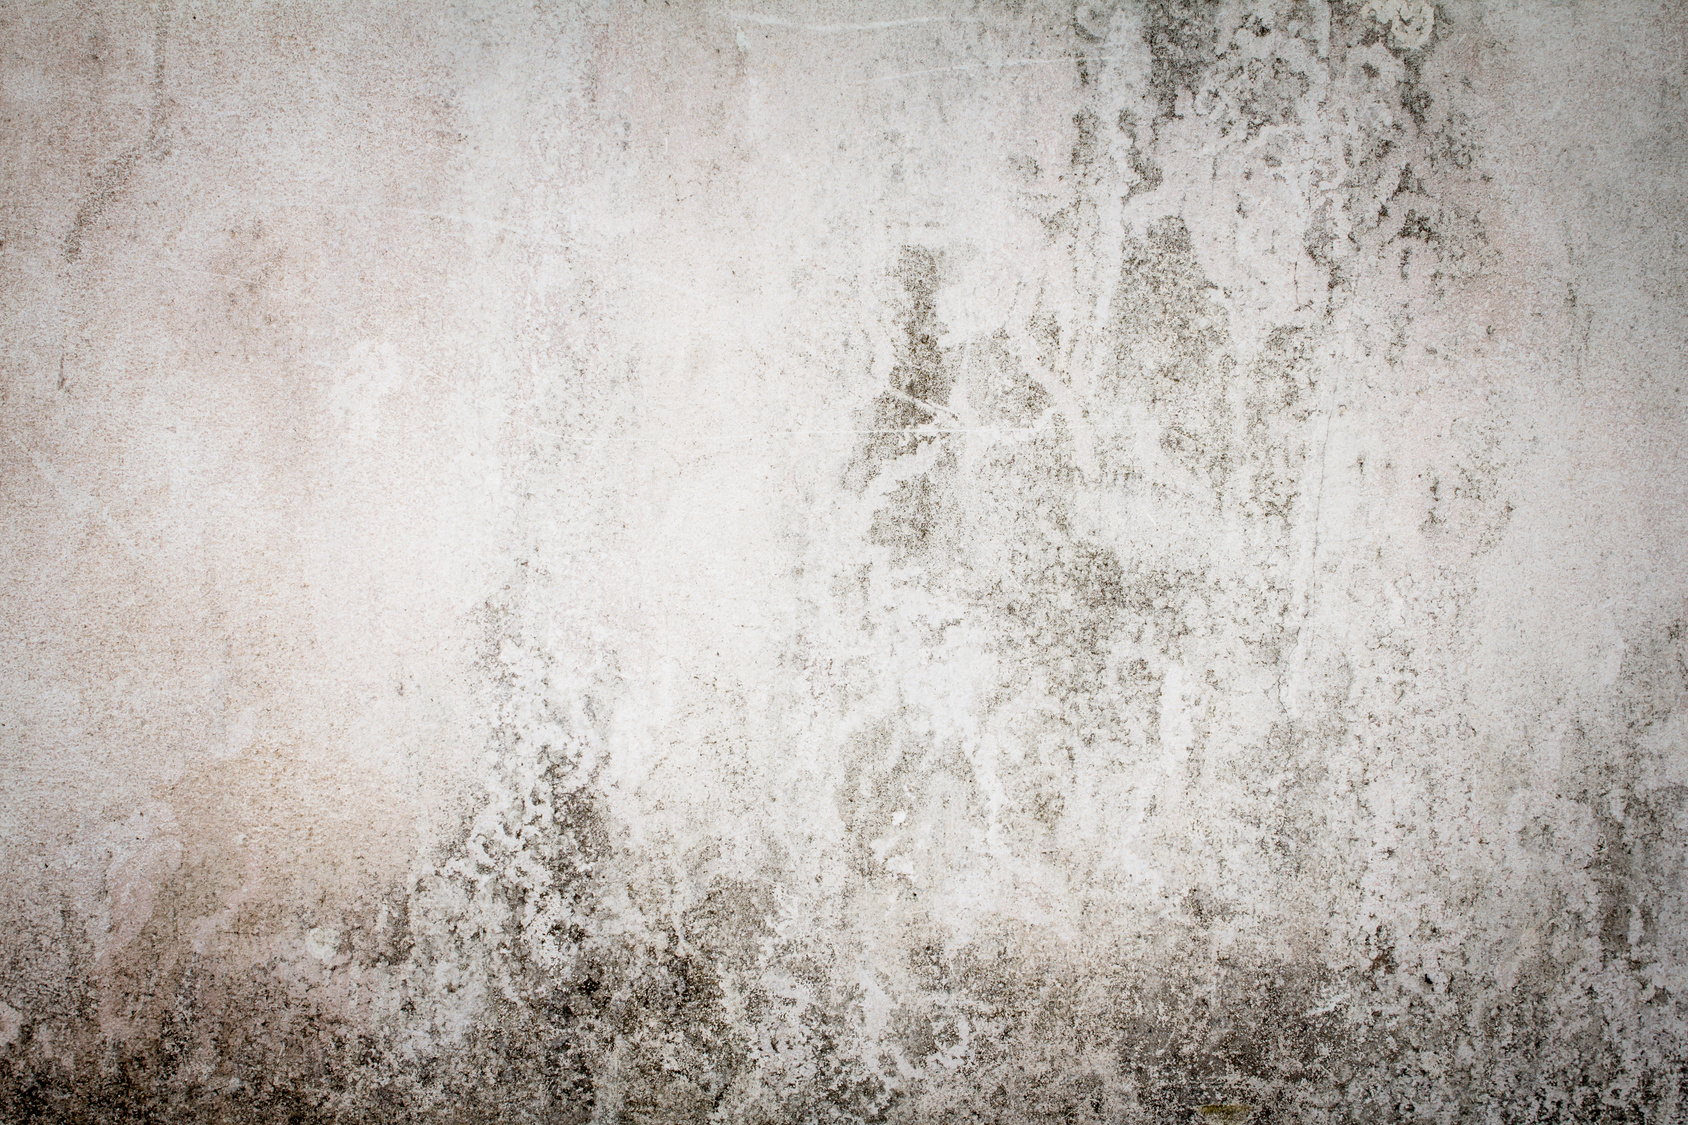 retro color tone of Dirty concrete wall background